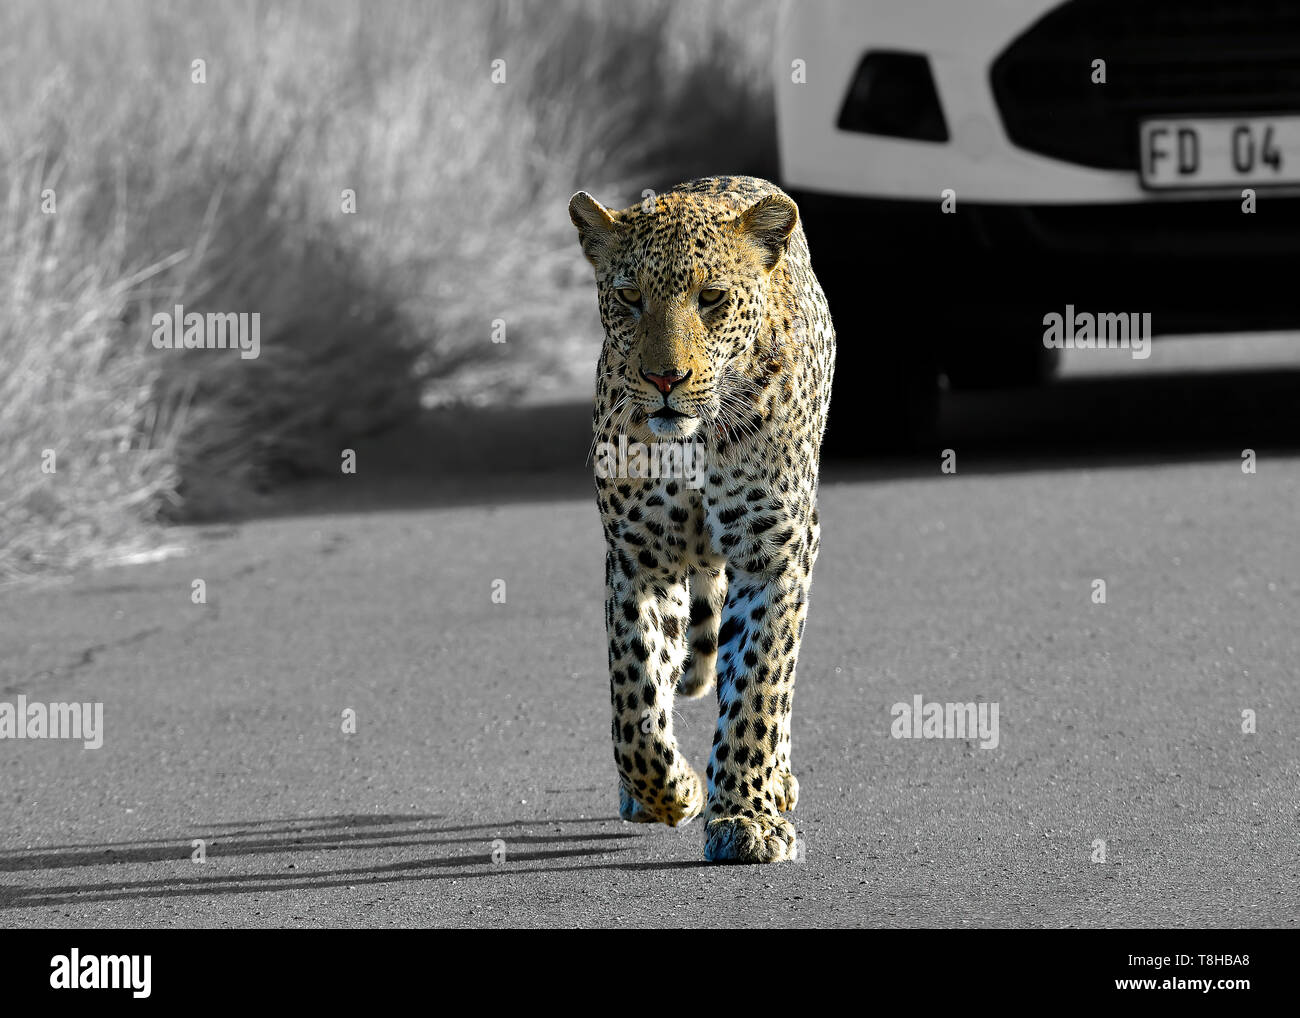 Leopard Panthera Pardus patrolling territory Kruger National Park, South Africa - Stock Image